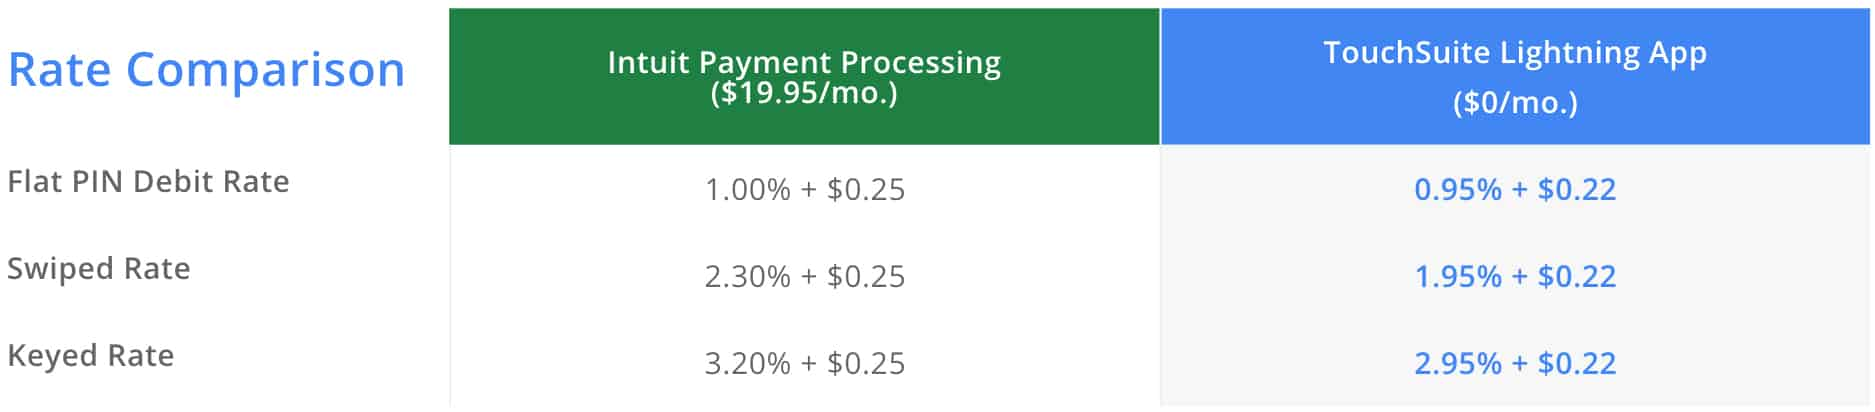 Quickbooks Paymnets Vs Lightning Payments Credit Card Processing Comparison